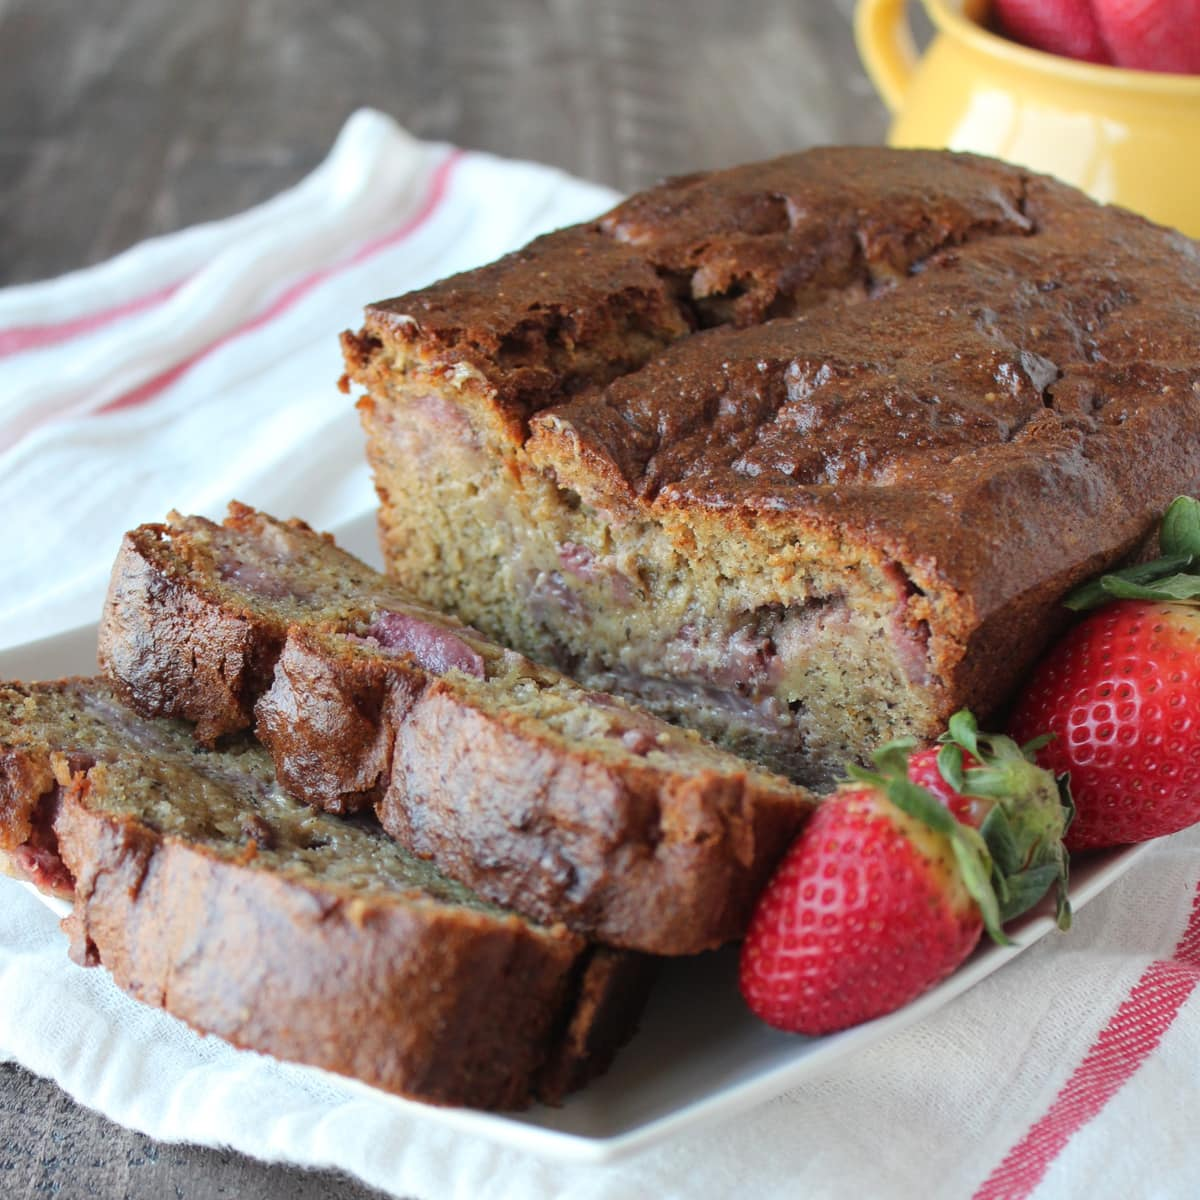 Gluten Free Strawberry Banana Bread